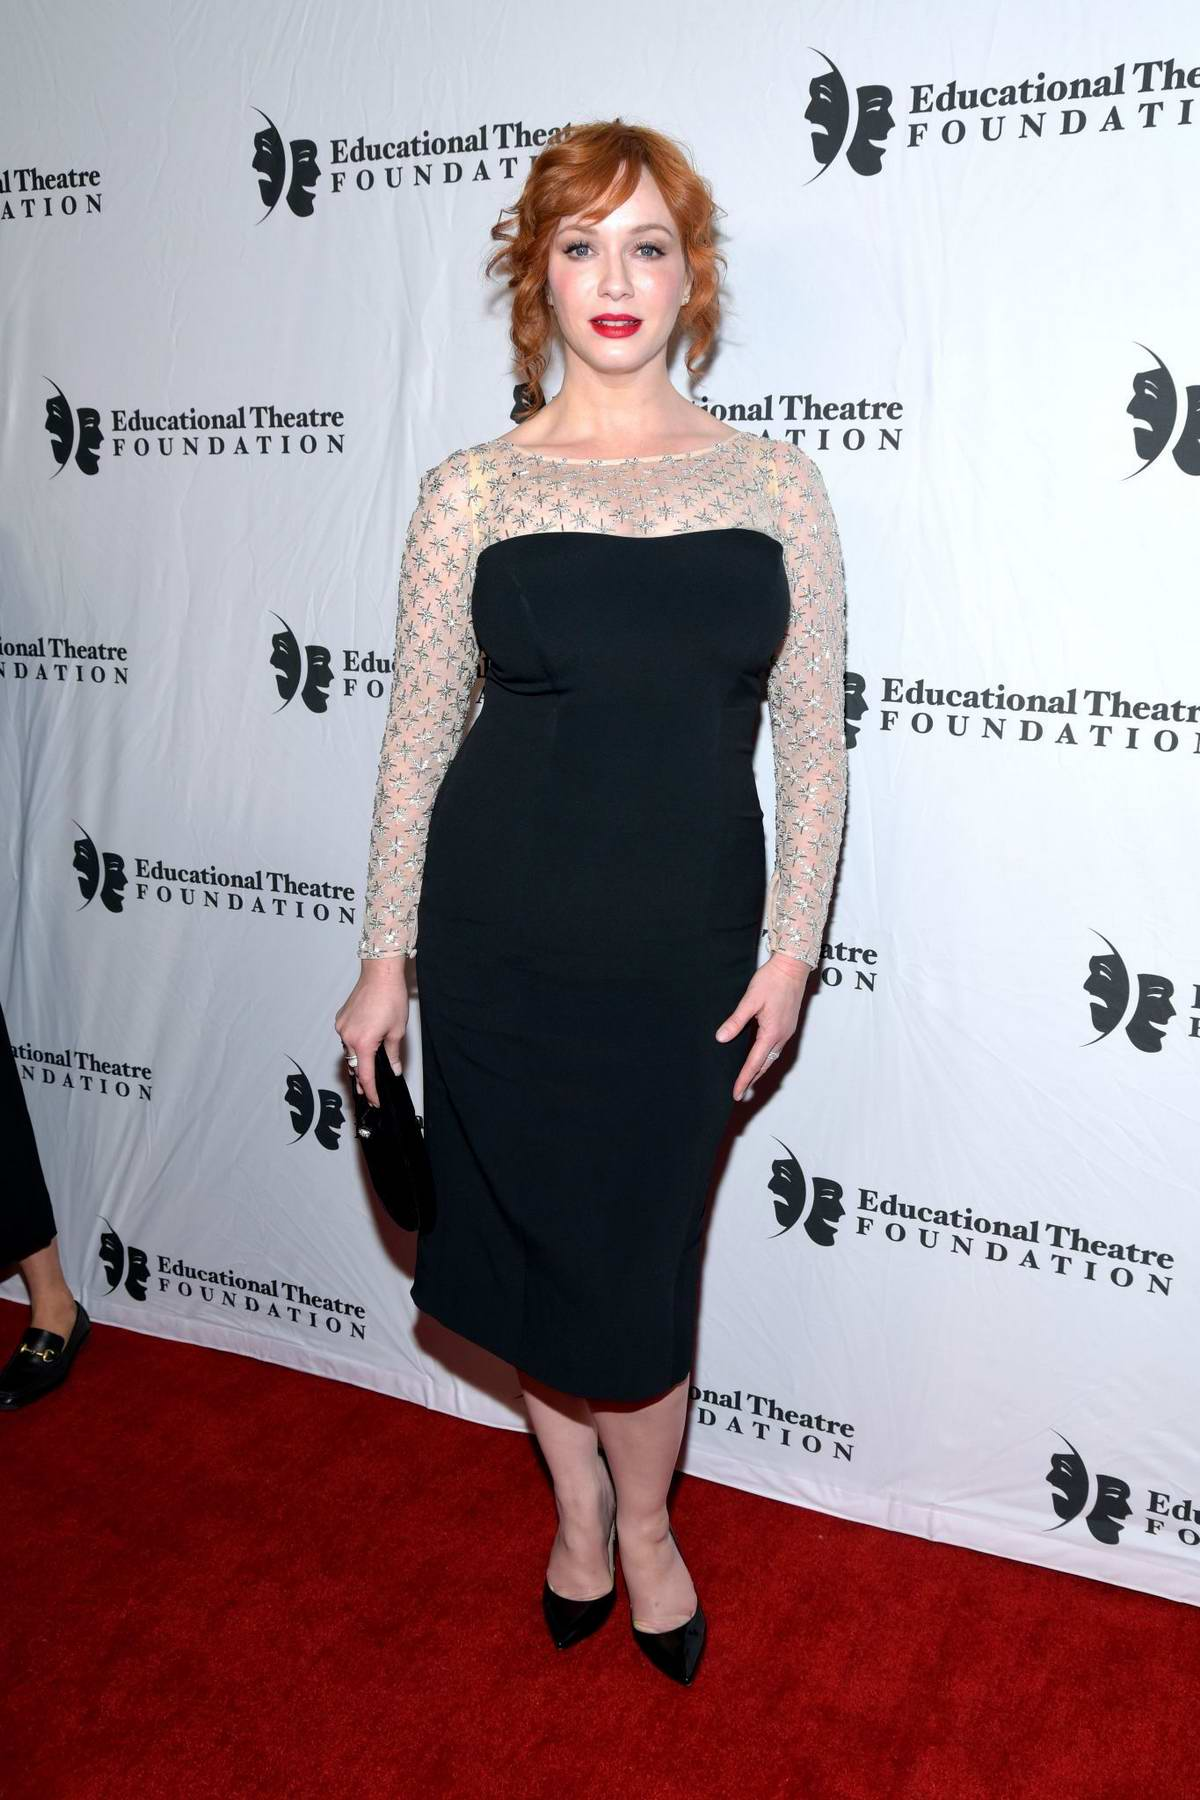 Christina Hendricks attends the 2019 annual Thespians Go Hollywood Gala at Avalon Hollywood in Los Angeles